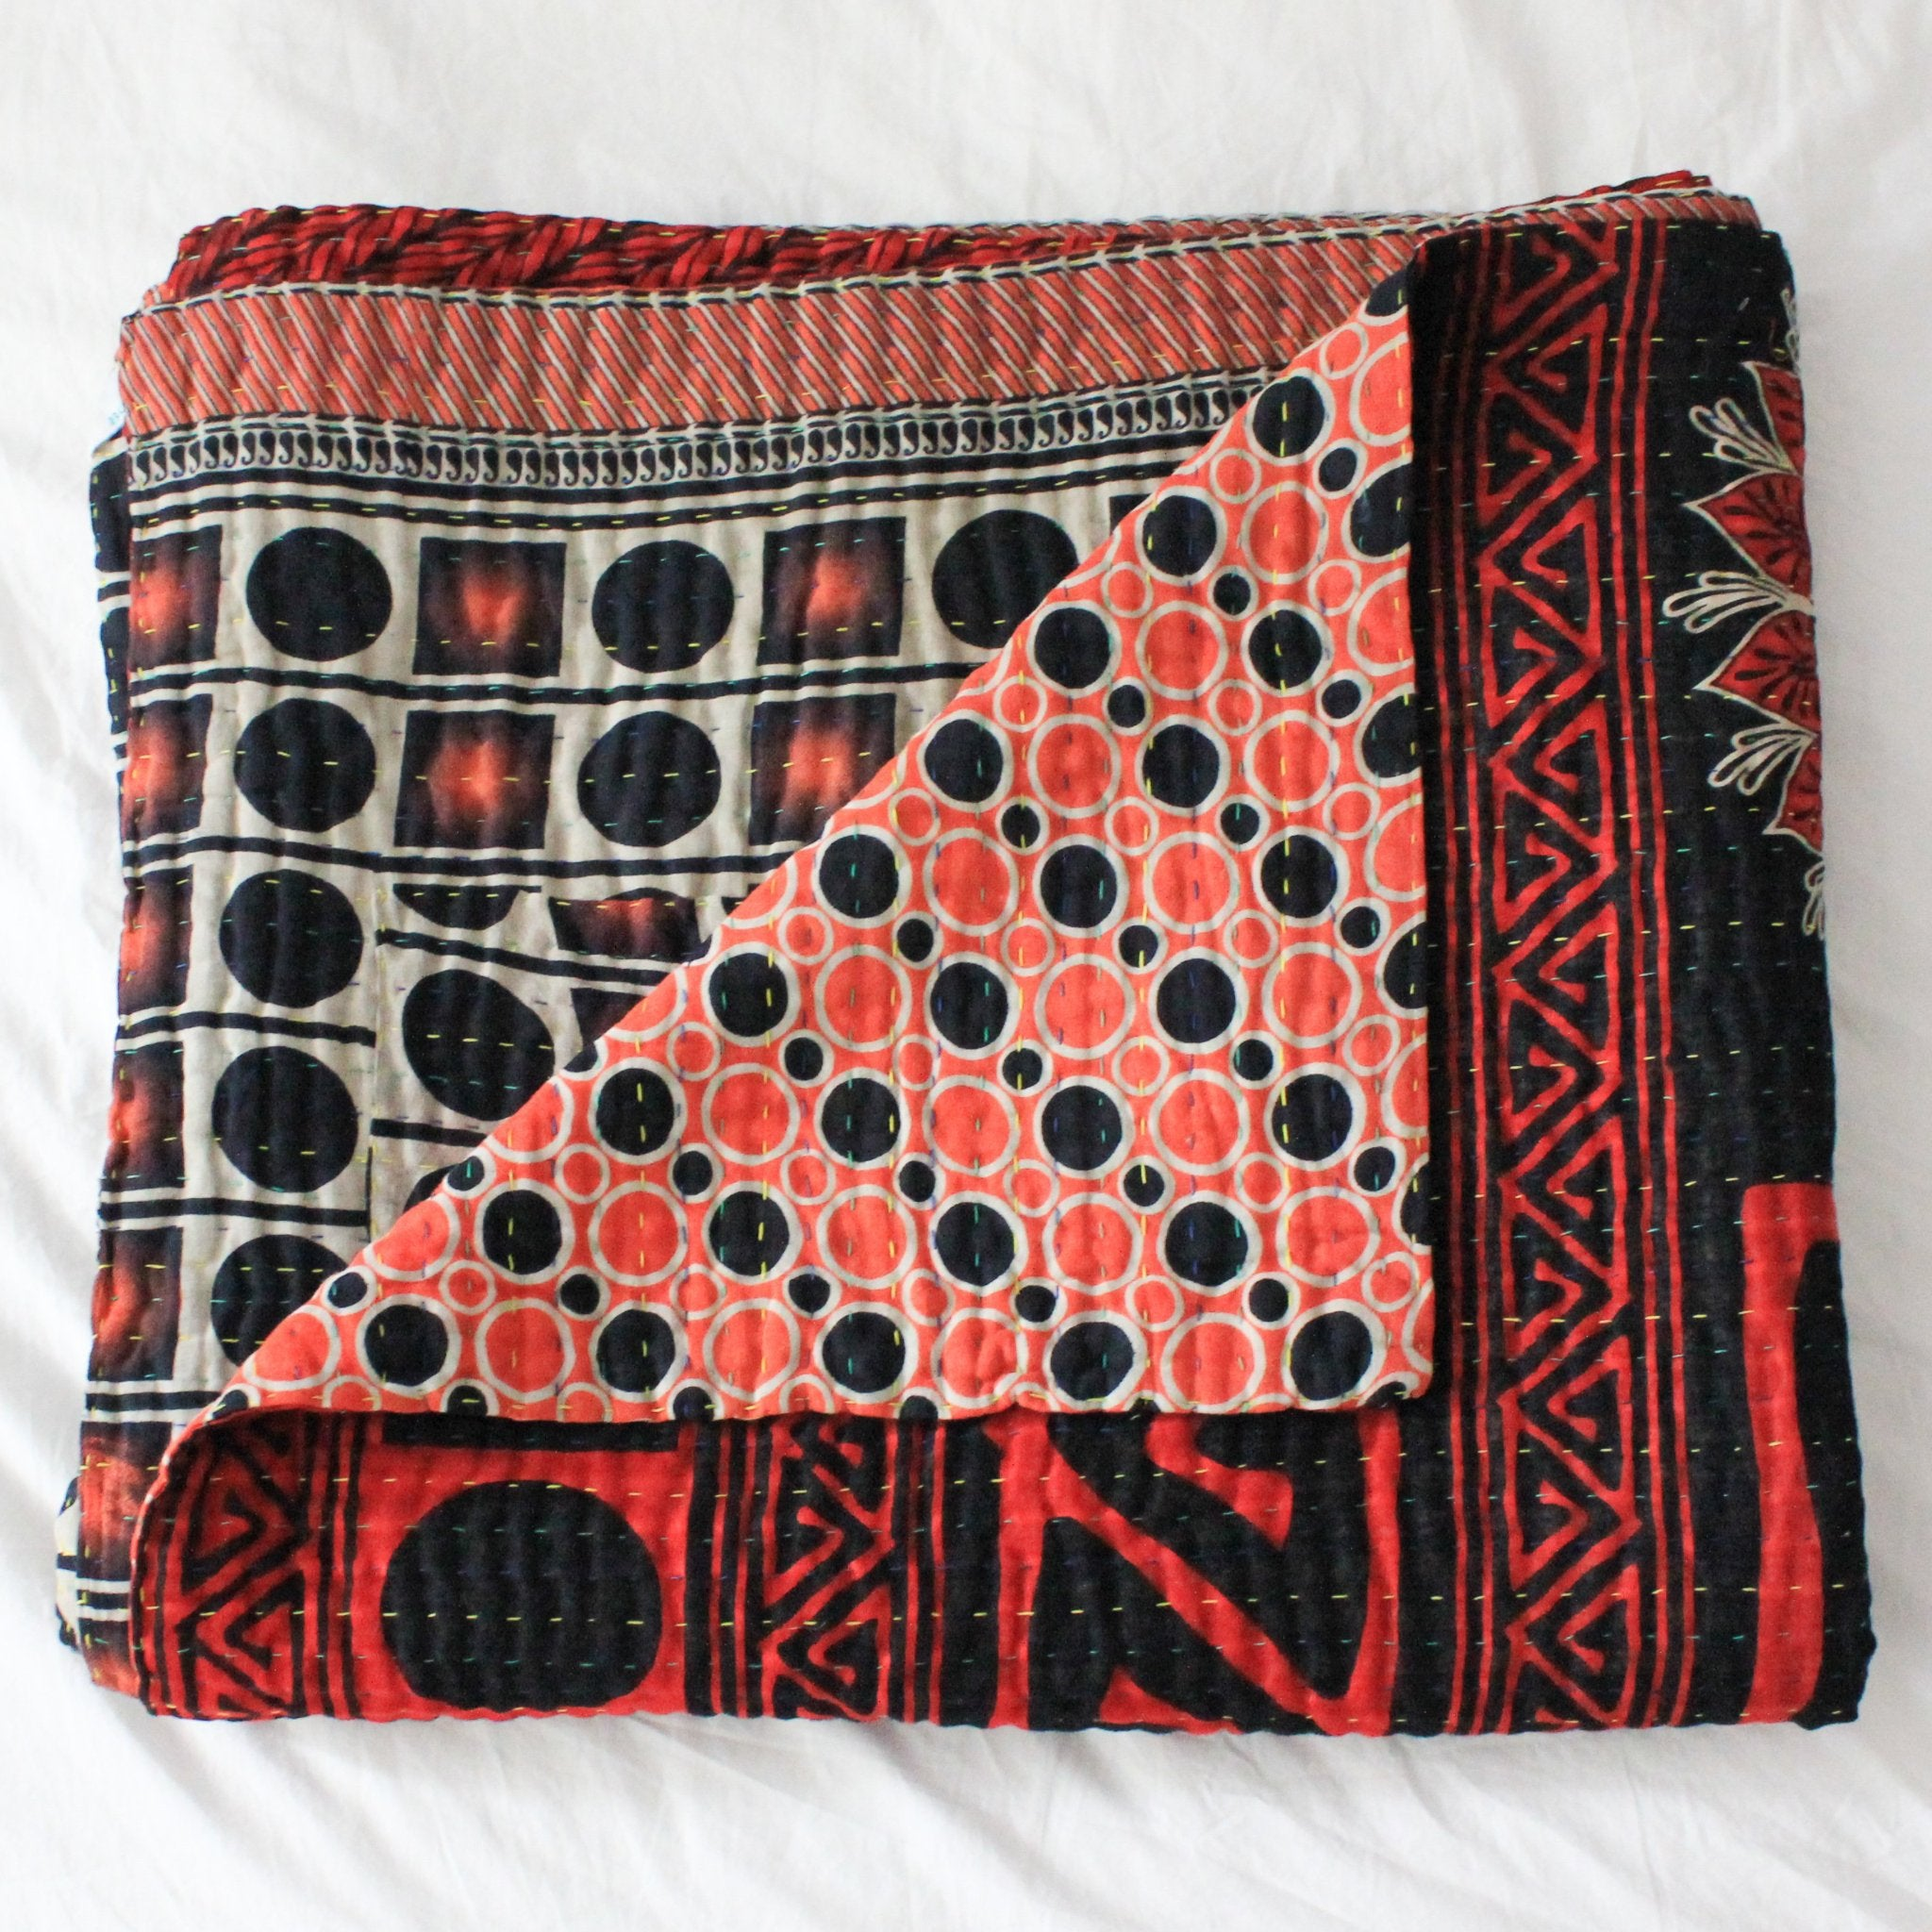 Vintage Kantha Quilt with geometrical pattern - Anokha Collection